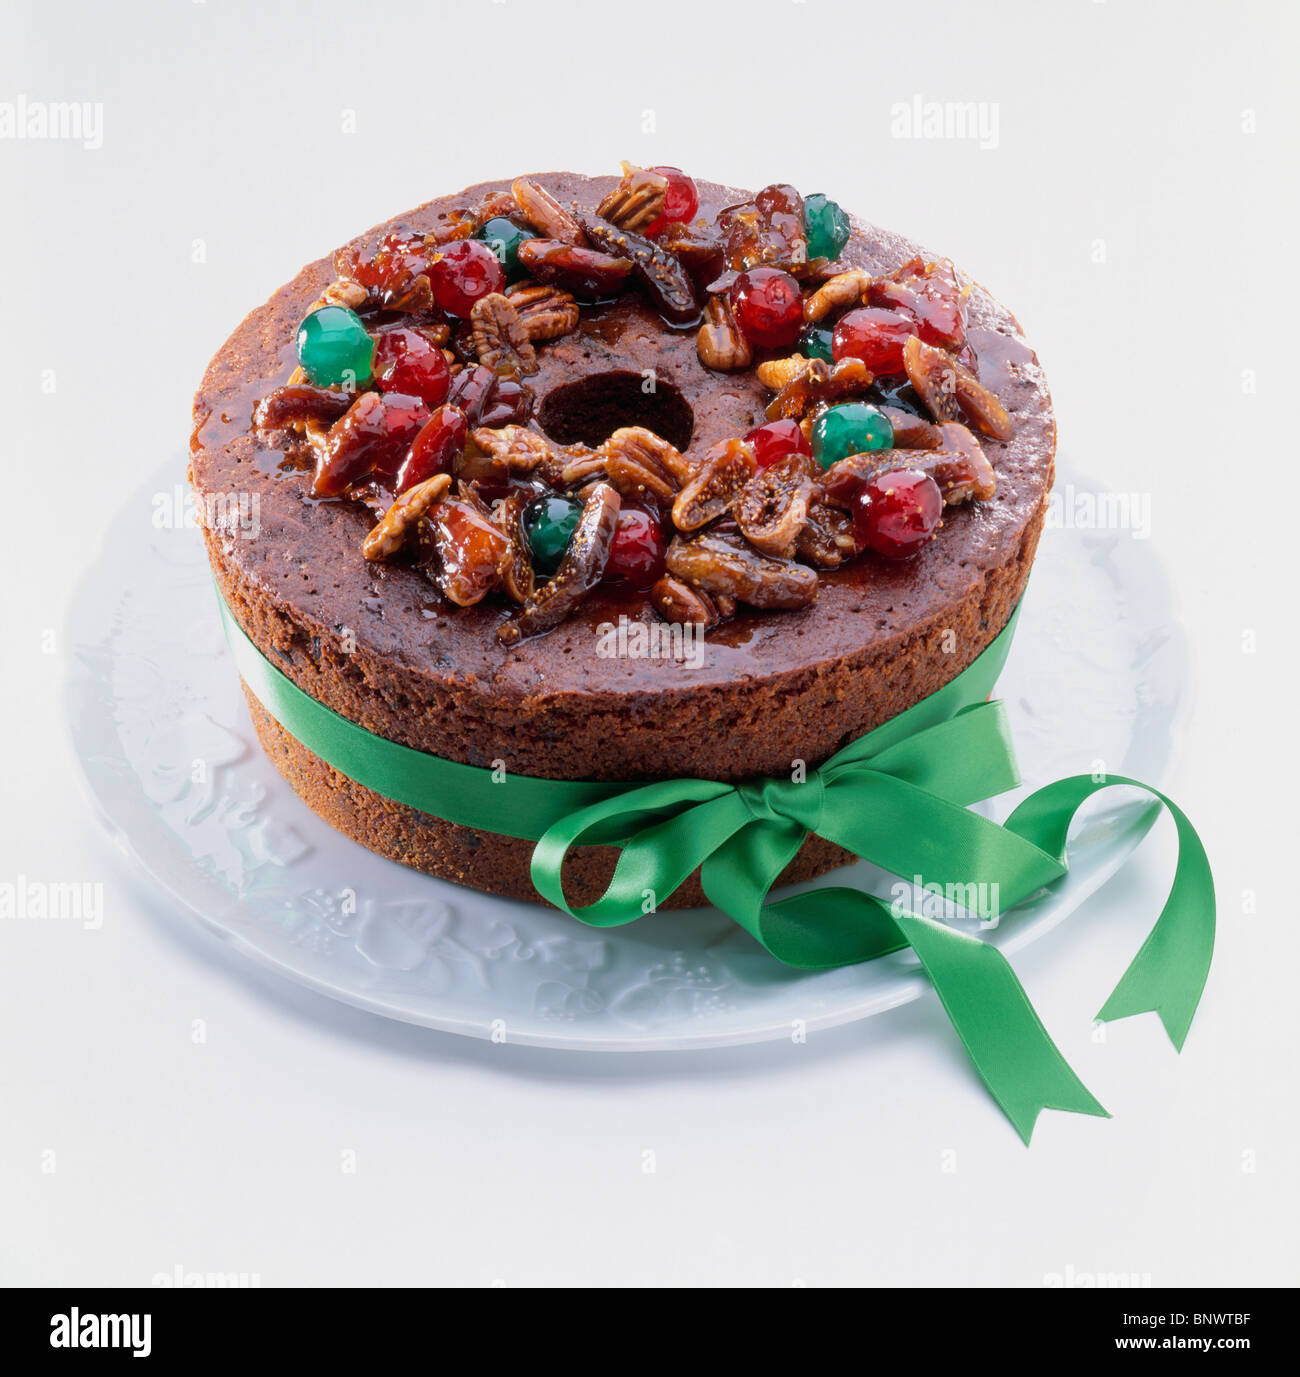 Green ribbon tied to spiced minced meat cake topped with glazed nuts and cherries - Stock Image